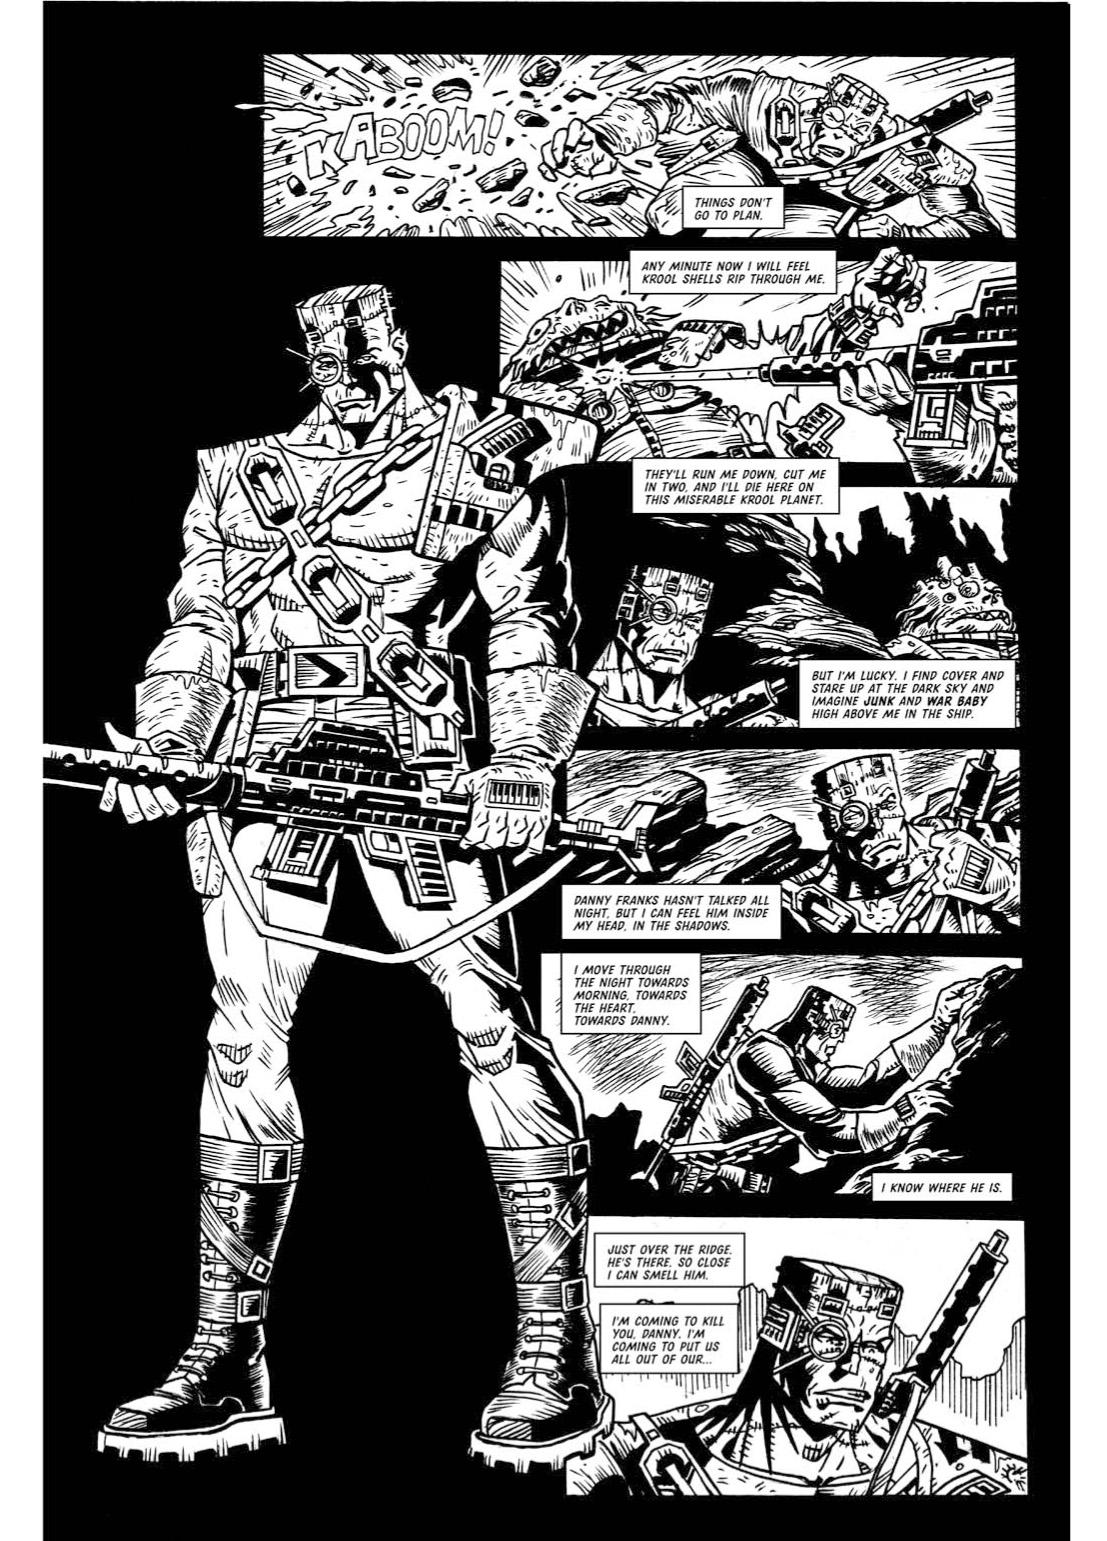 Read online The Complete Bad Company comic -  Issue # TPB - 346